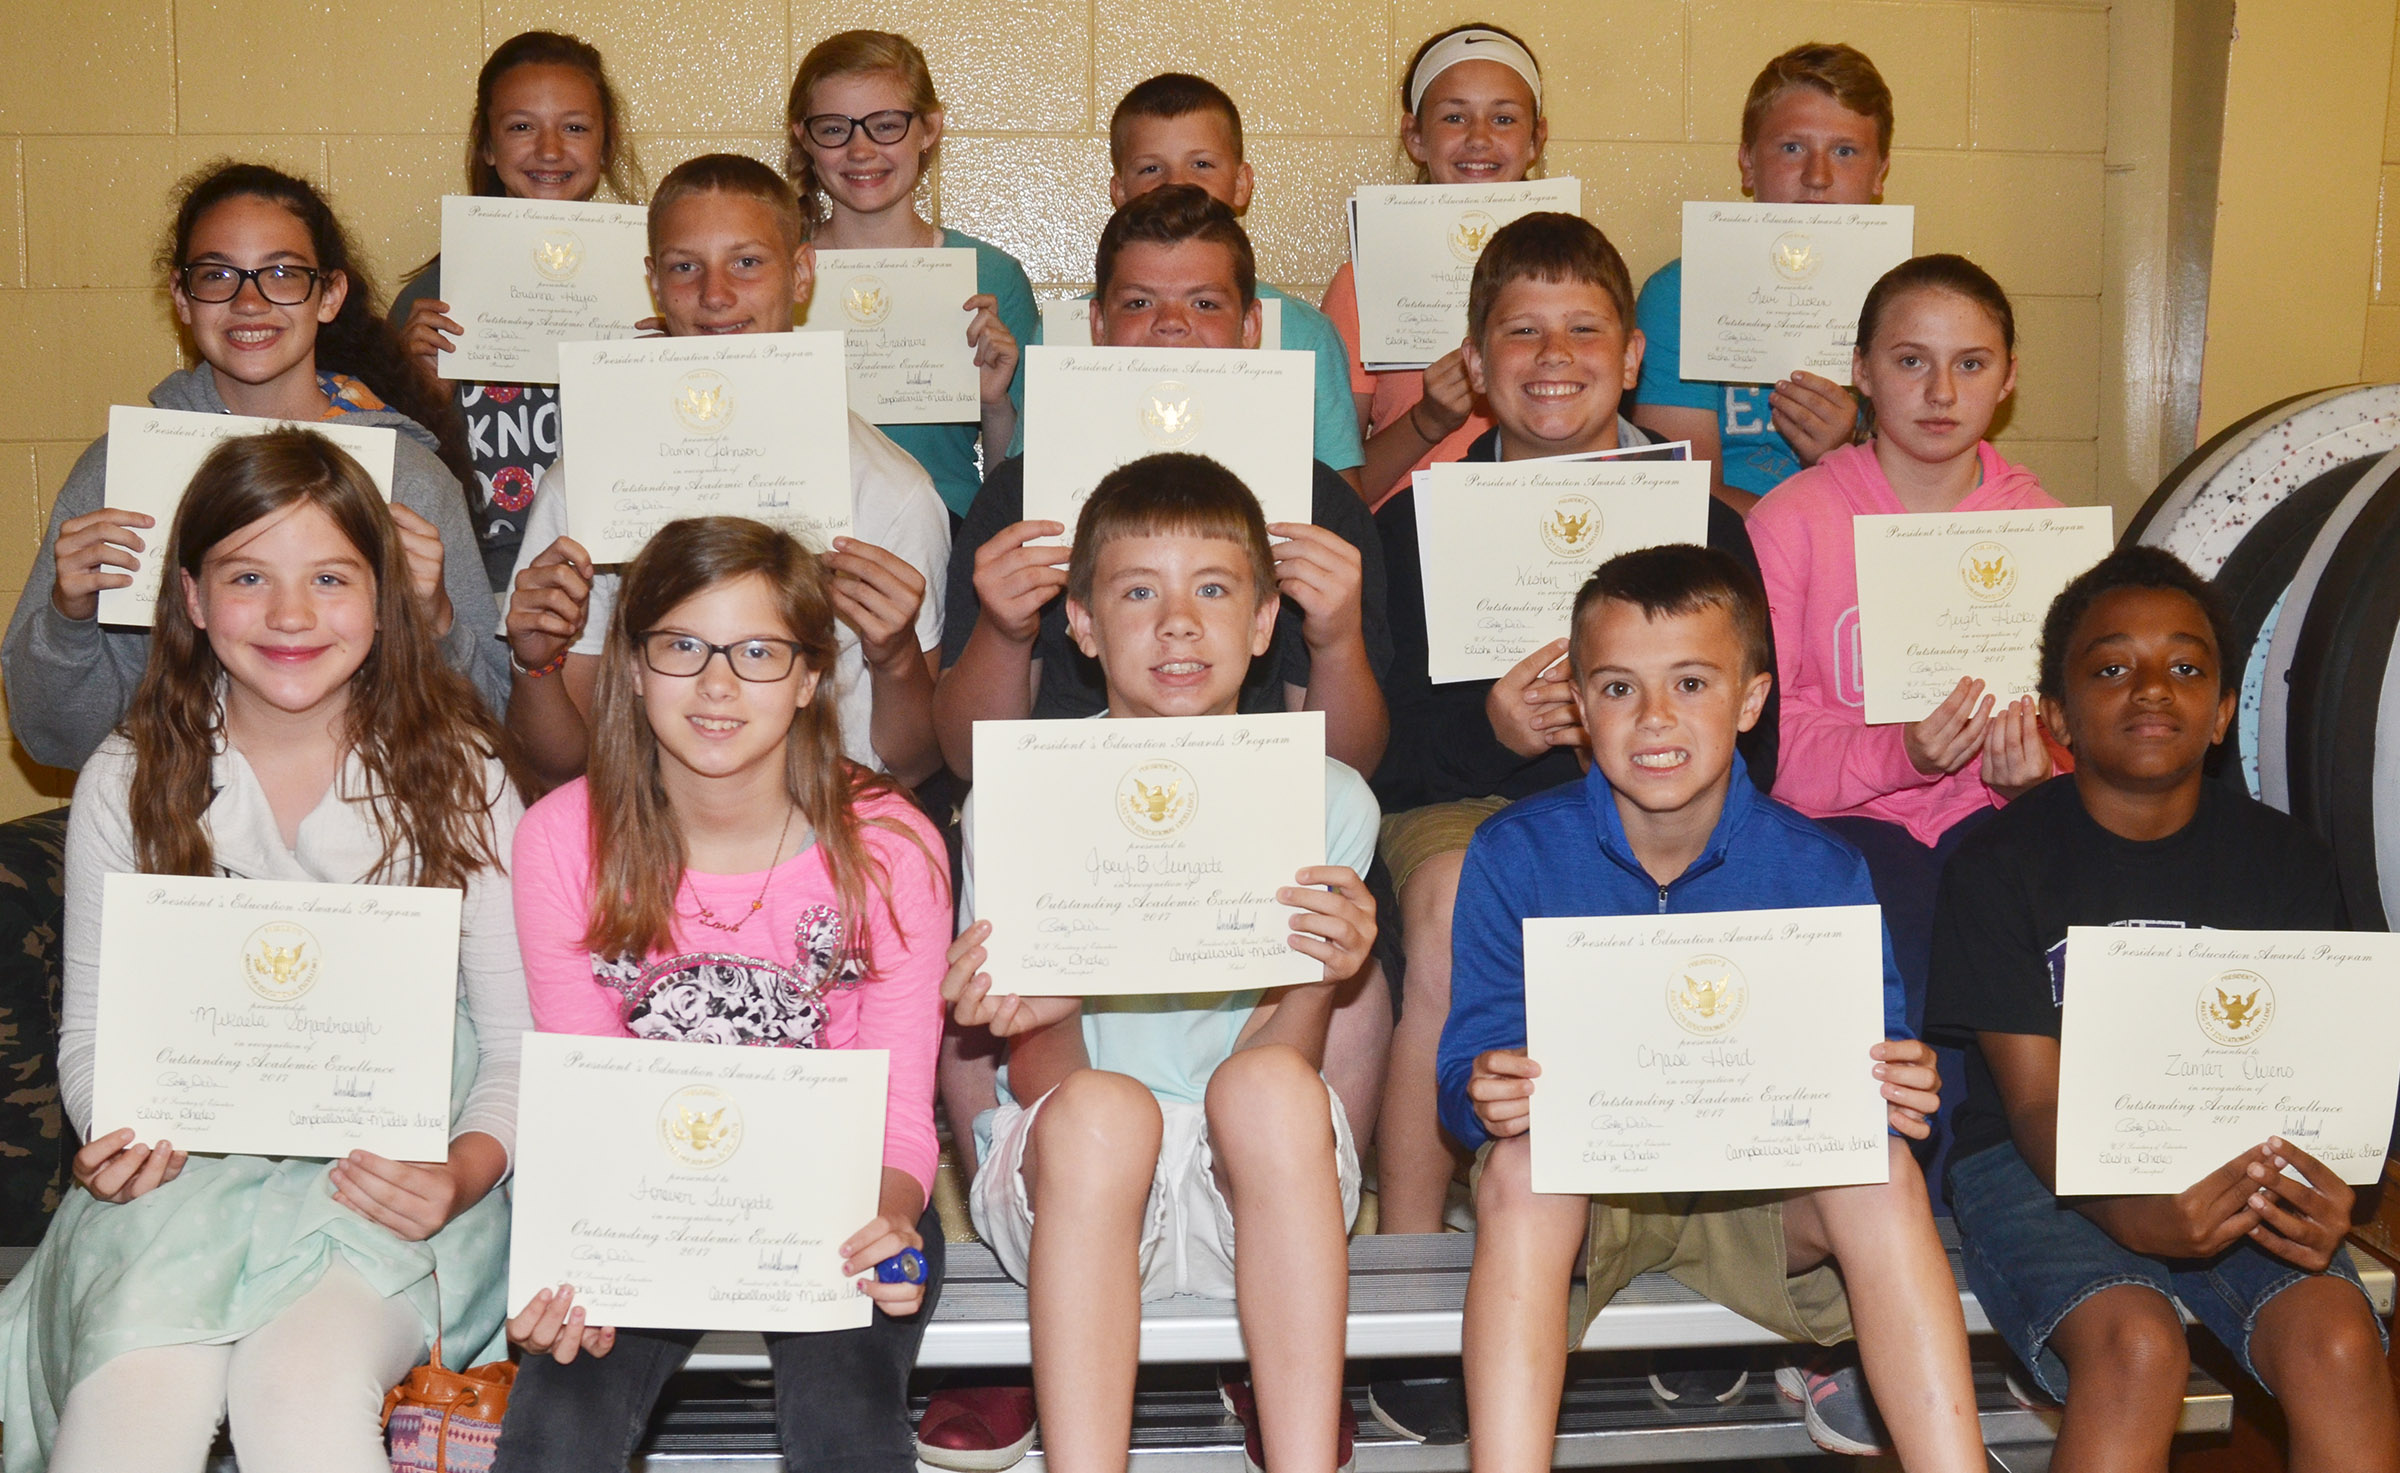 Sixth-grade president's award for educational excellence winners are, from left, front, Mikaela Scharbrough, Forever Tungate, Blake Tungate, Chase Hord and Zamar Owens. Second row, Mary Russell, Damon Johnson, Hayden Jones, Weston Mattingly and Leigh Hicks, Back, Bri Hayes, Whitney Frashure, Konner Forbis, Haylee Allen and Levi Dicken.